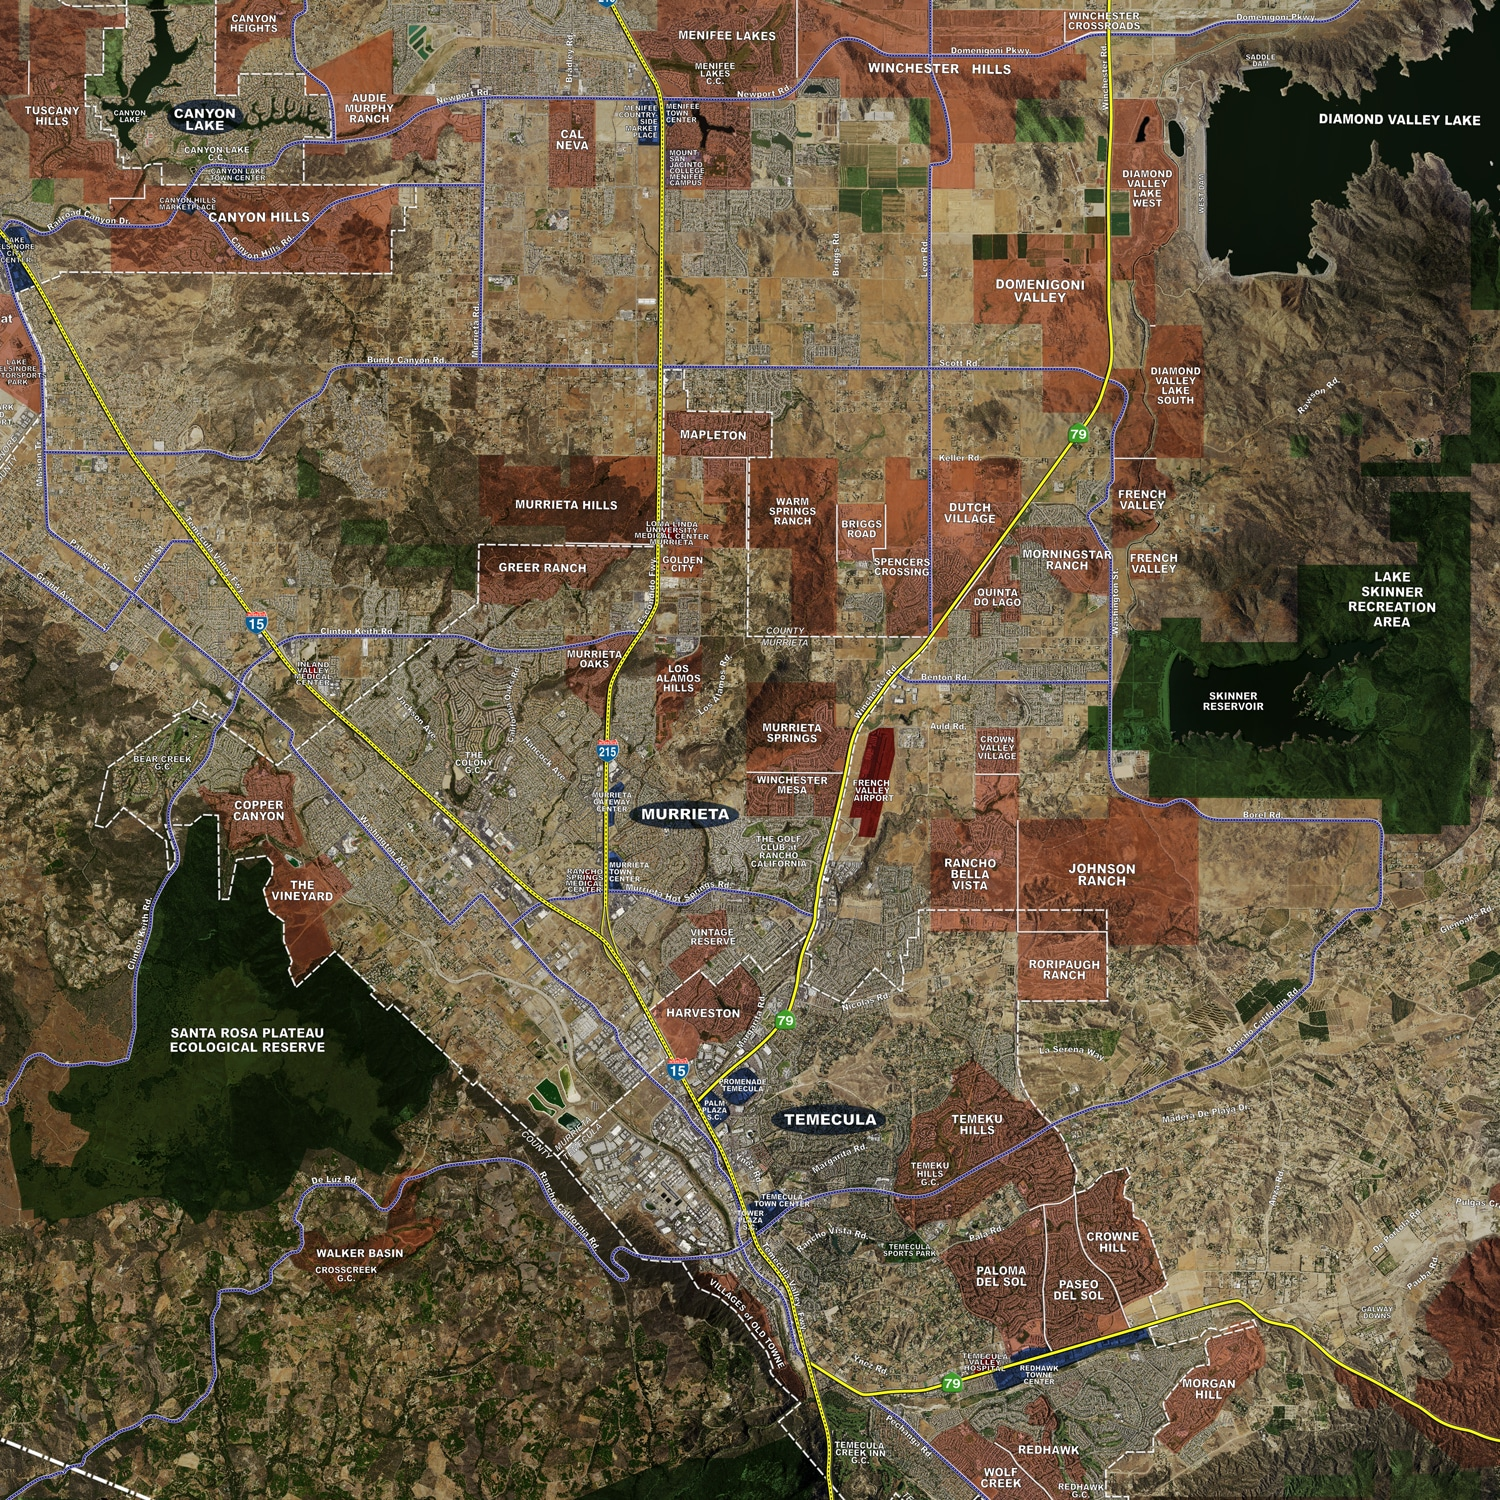 Inland Empire - Aerial Wall Mural on map of the central coast california, map of the piedmont triad, san bernardino, map of the dc metro area, map of the orange county, orange county, map of the san joaquin valley, big bear lake, southern california, map of the imperial valley, imperial county, map of the merced county, map of the san francisco, san fernando valley, imperial valley, map of the san diego, map of the gulf south, map of the san bernardino, map of the gaslamp quarter, map of the greater bay area, map of the sf peninsula, high desert, map of the mojave river, greater los angeles area, coachella valley, san bernardino county, map of the southern border, map of the eastern sierras, ontario international airport, california central valley, san diego county, map of the big sur, map of the rio grande valley, los angeles metropolitan area, riverside county, map of the ida,